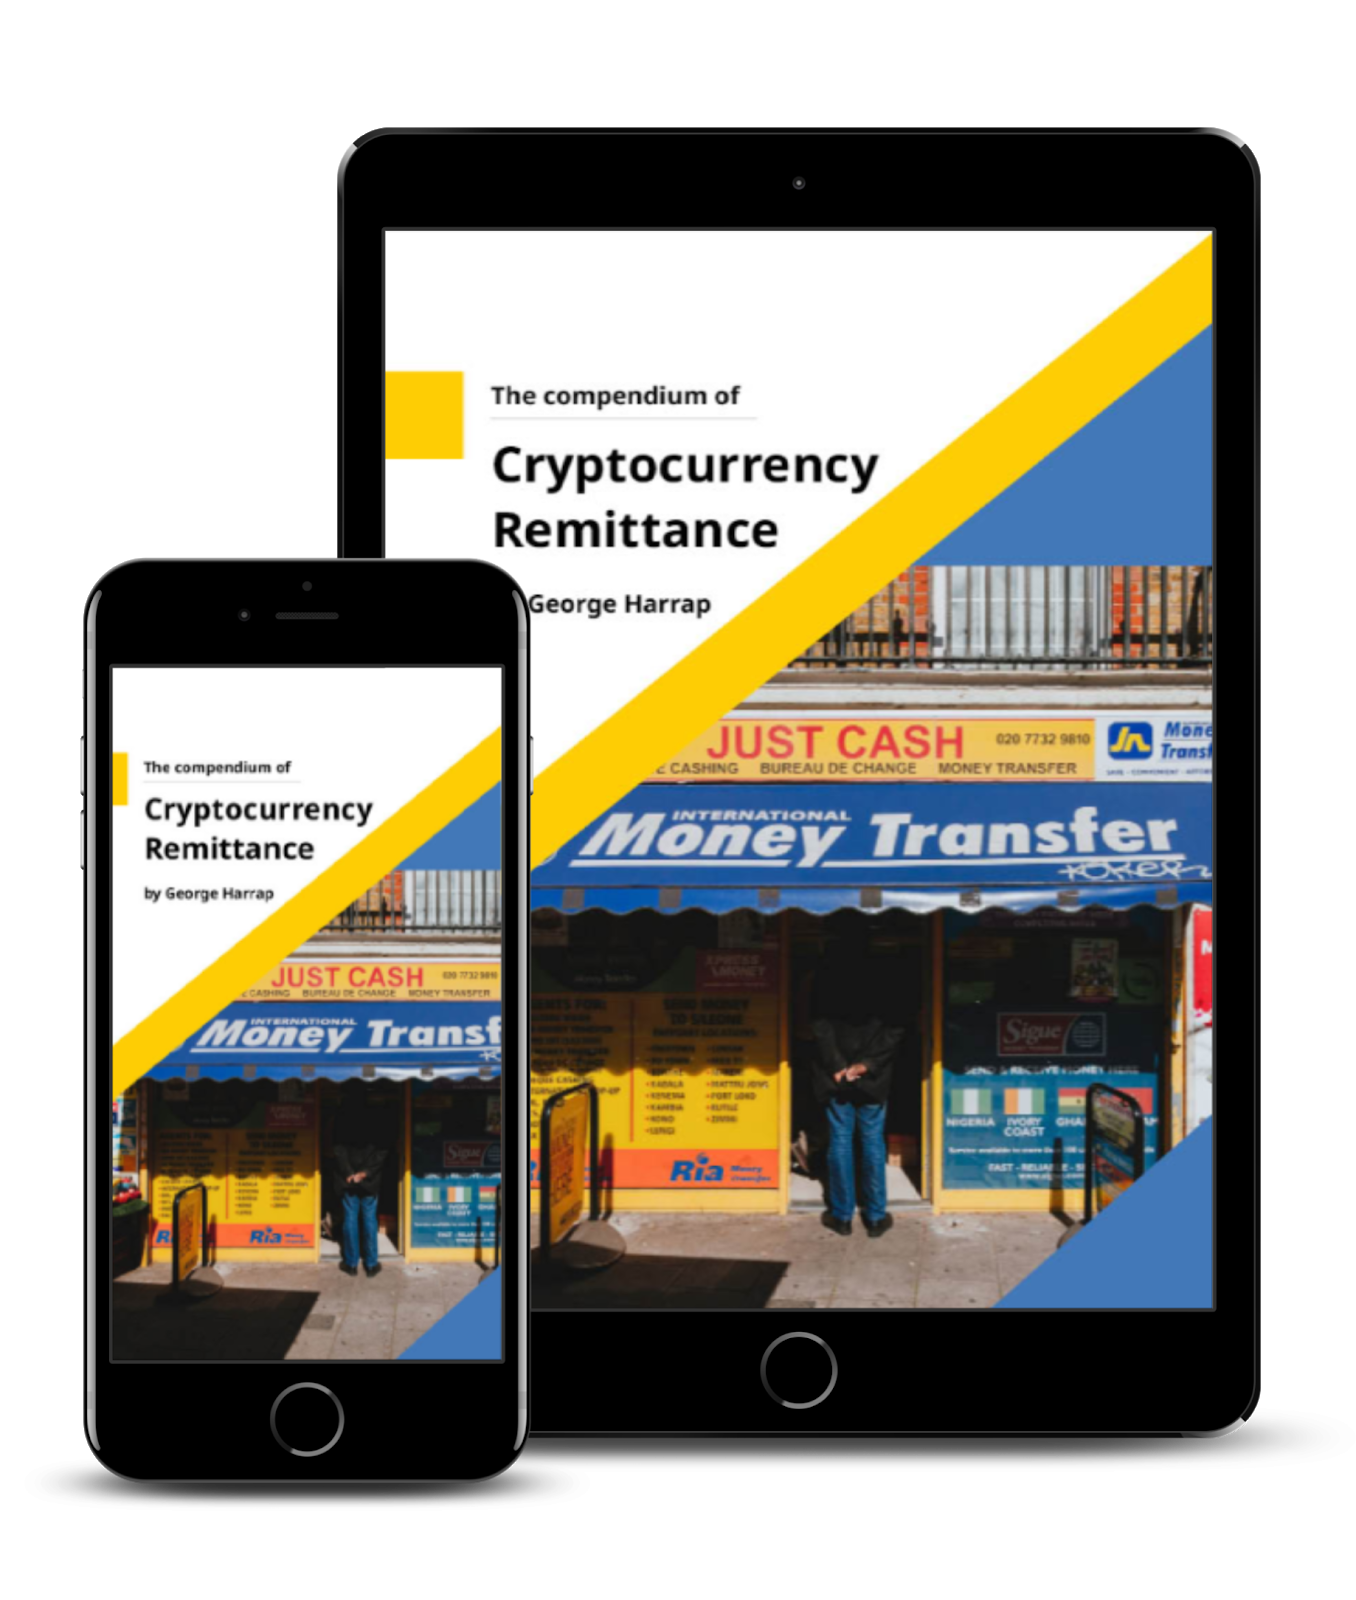 Image result for Compendium of Cryptocurrency Remittances book""